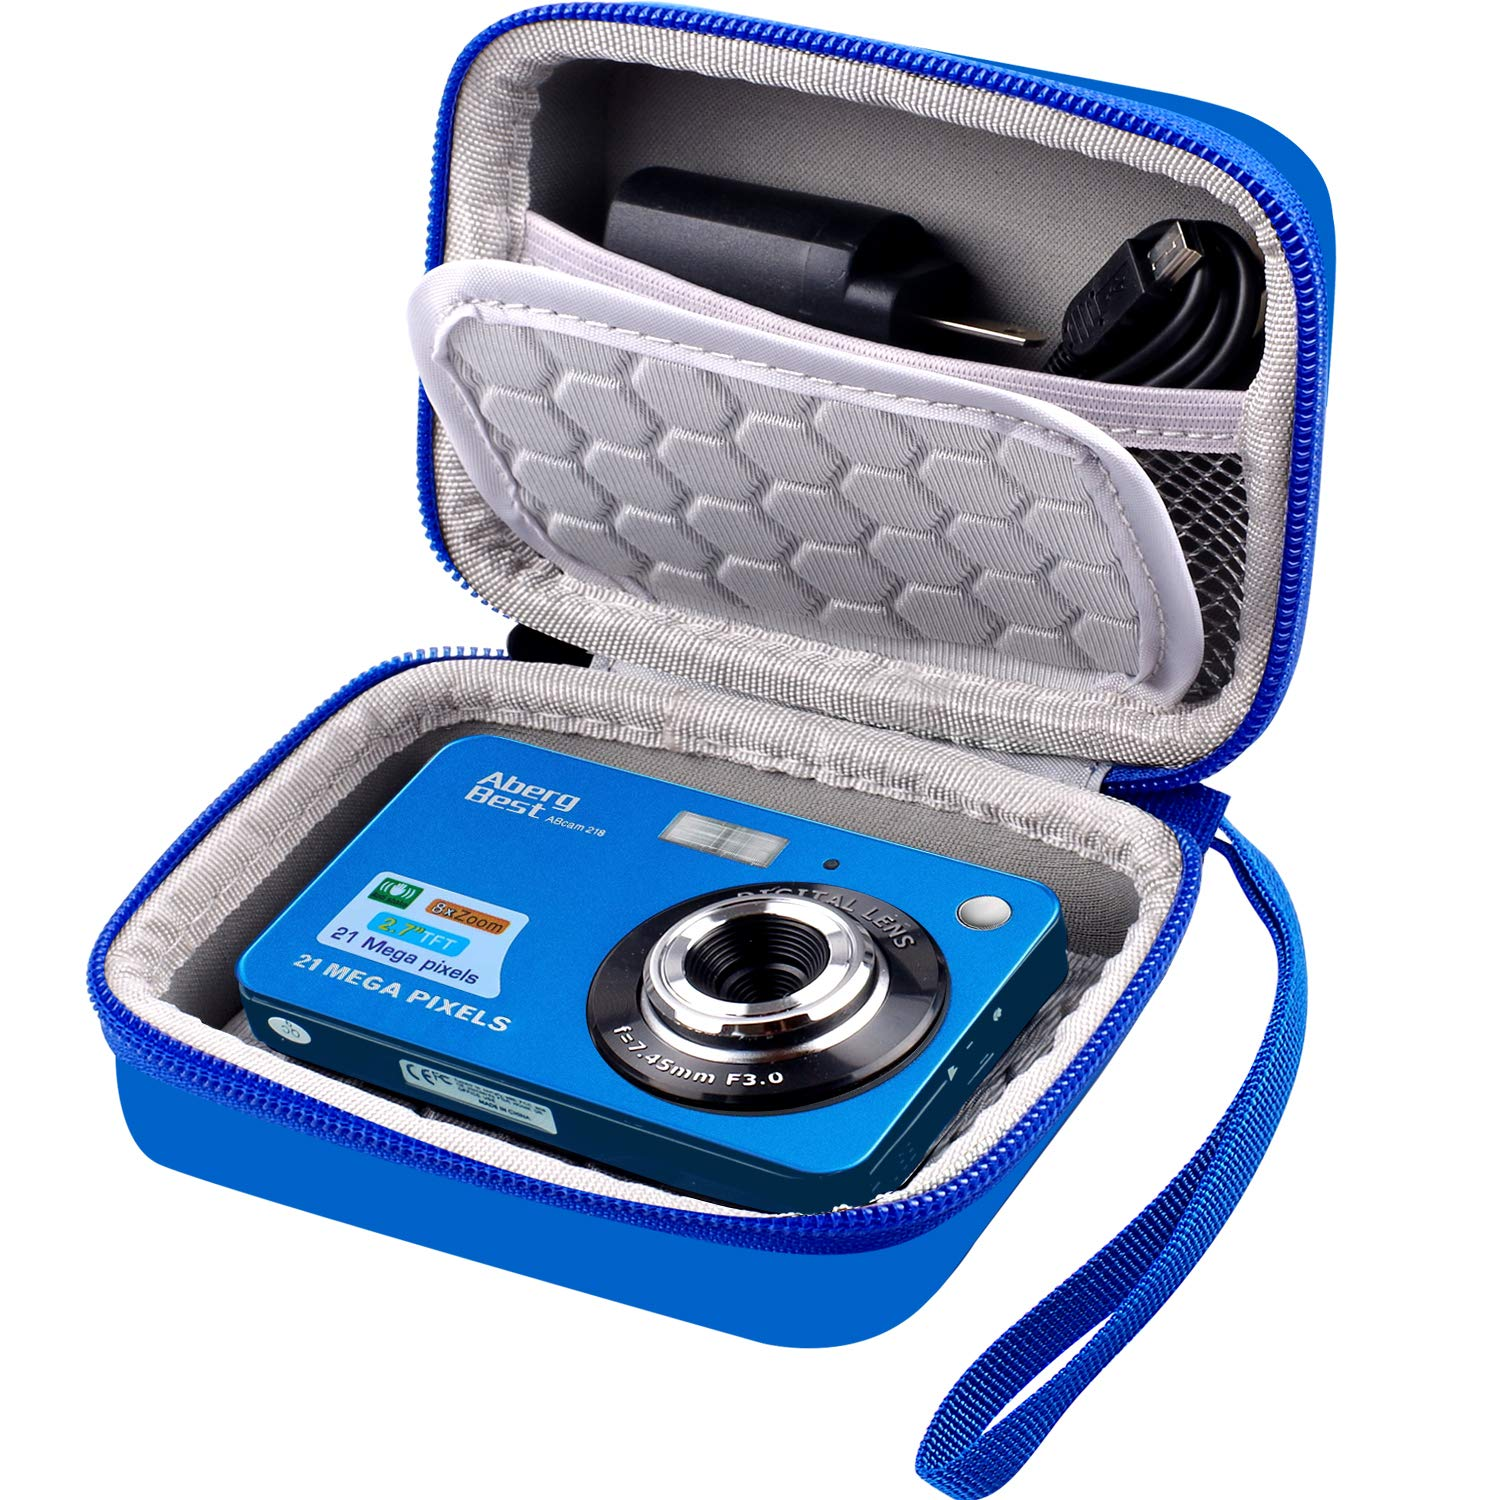 Carrying Protective AbergBest Rechargeable PowerShot